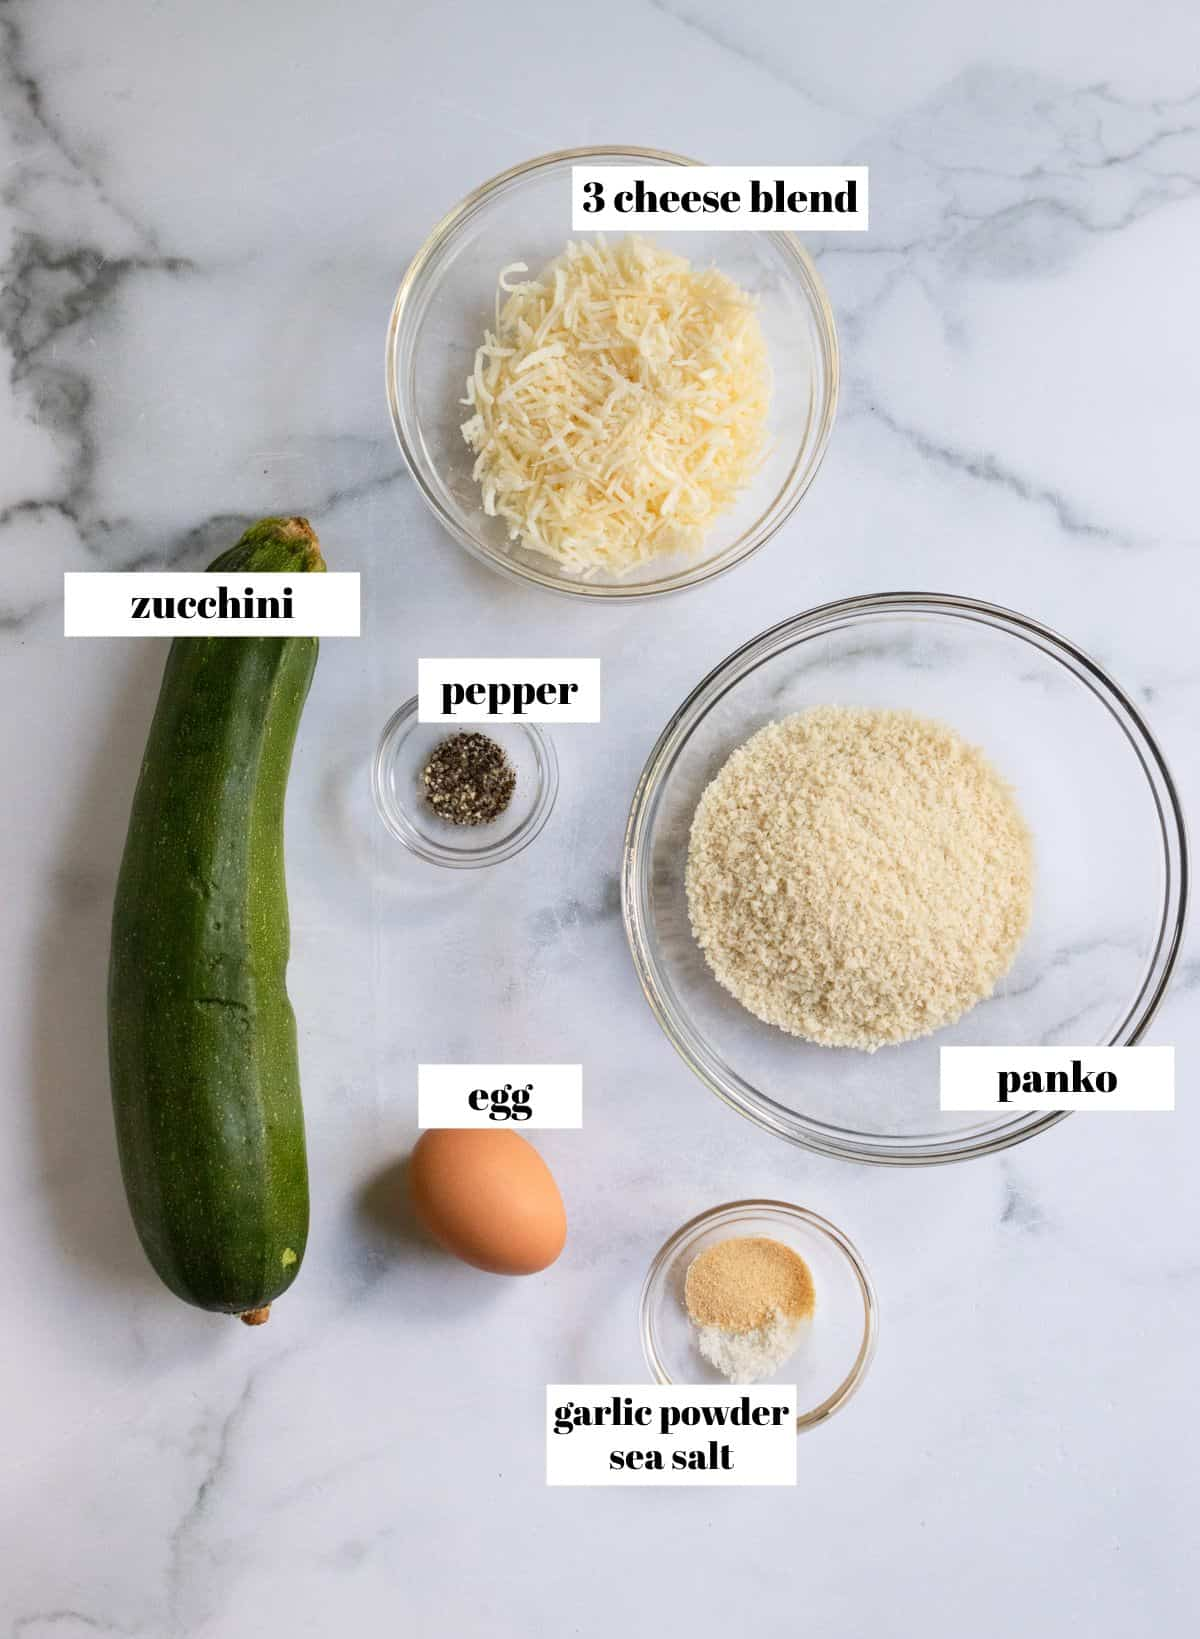 Labeled ingredients needed for recipe.